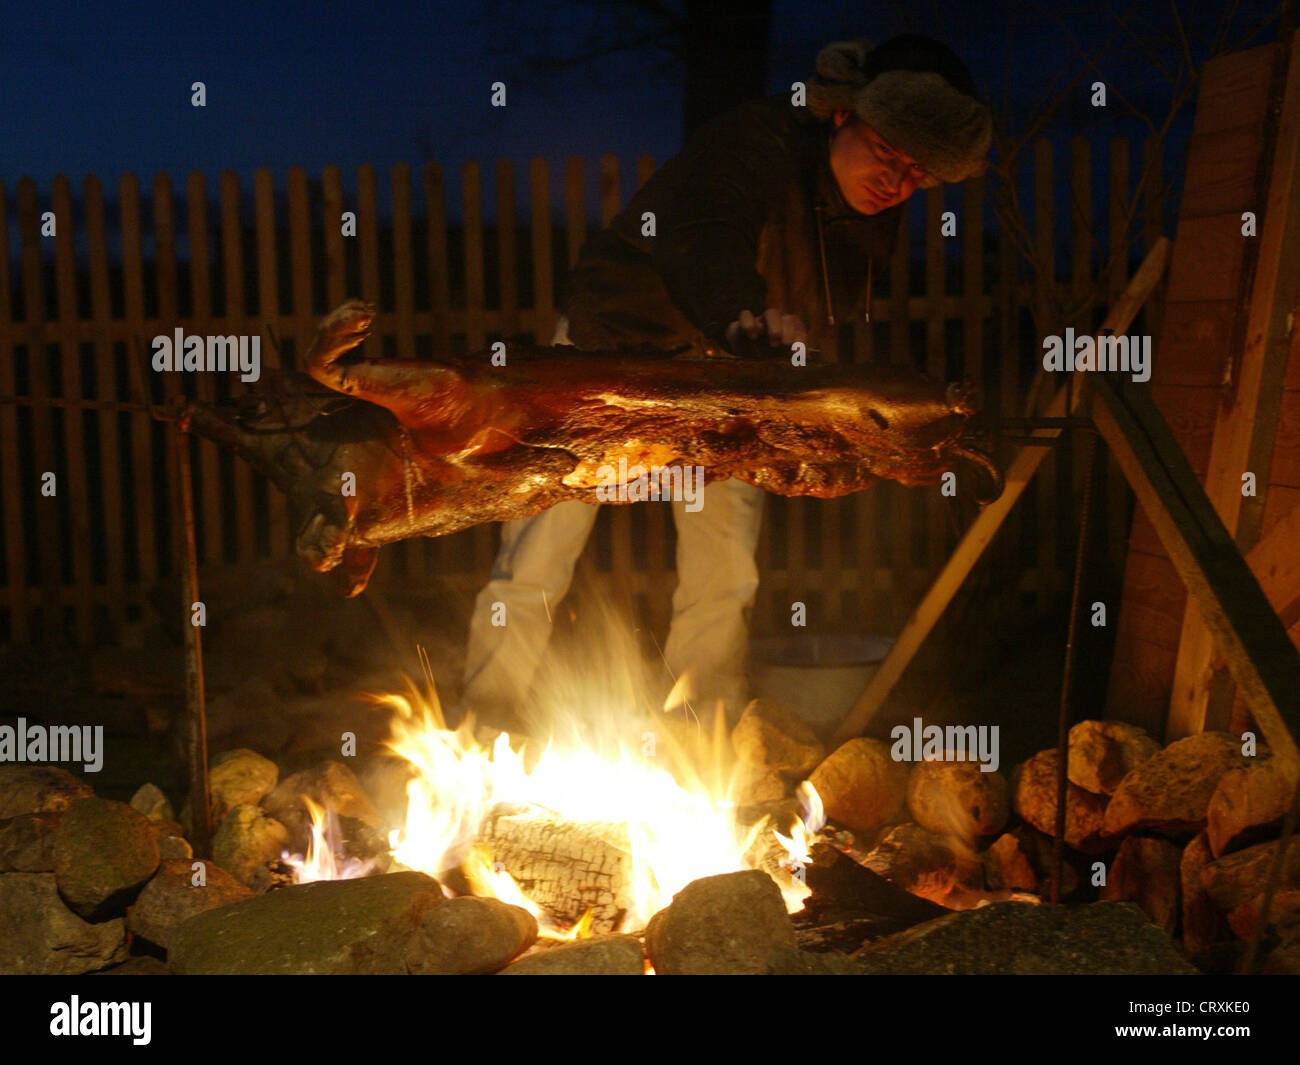 A man grilling a freshly killed suckling pig - Stock Image